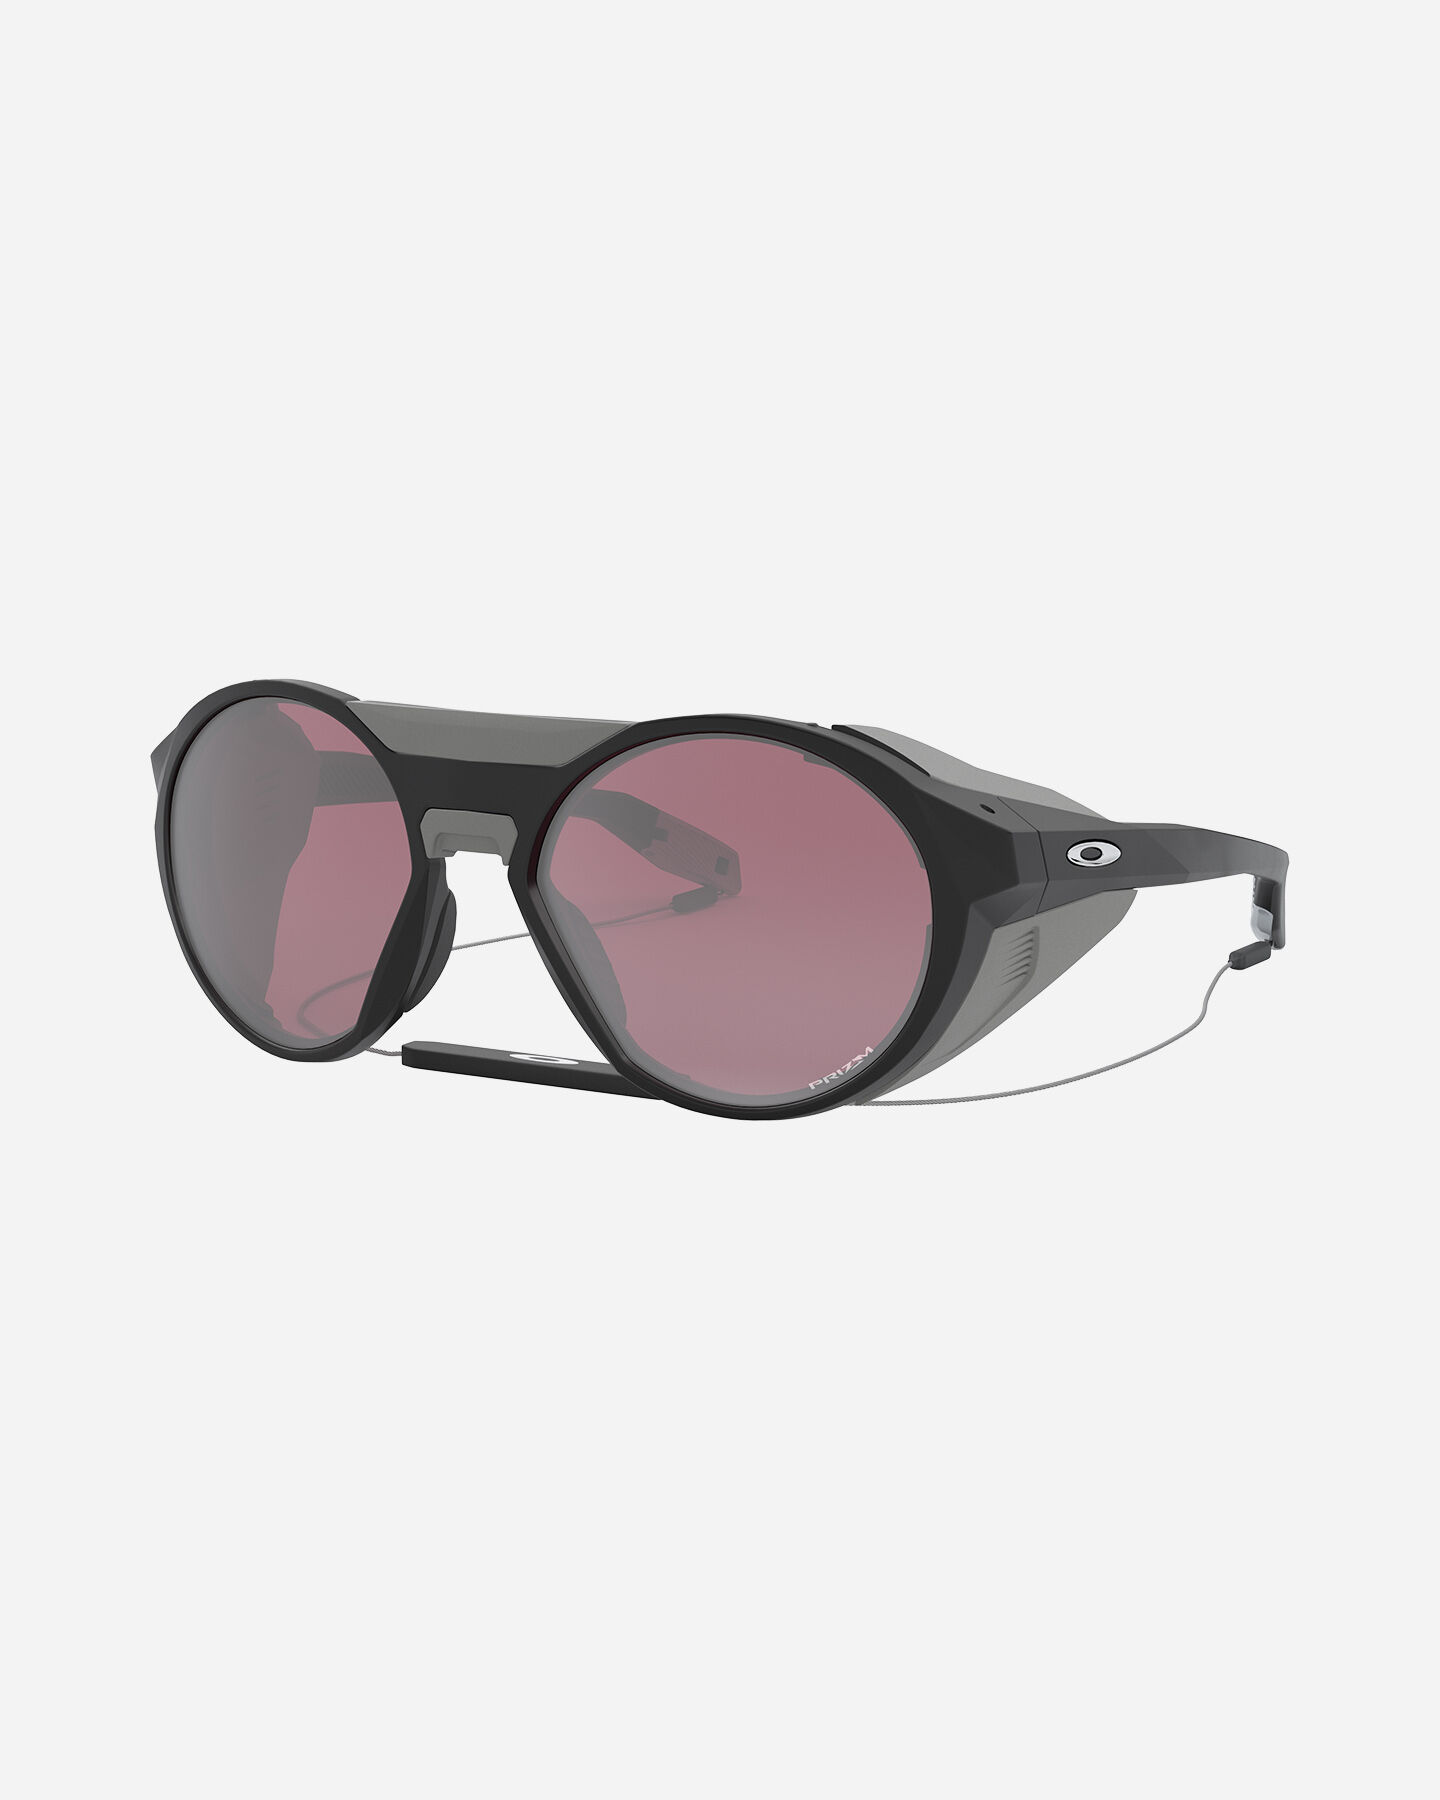 Occhiali OAKLEY CLIFDEN S5221232|0156|56 scatto 0